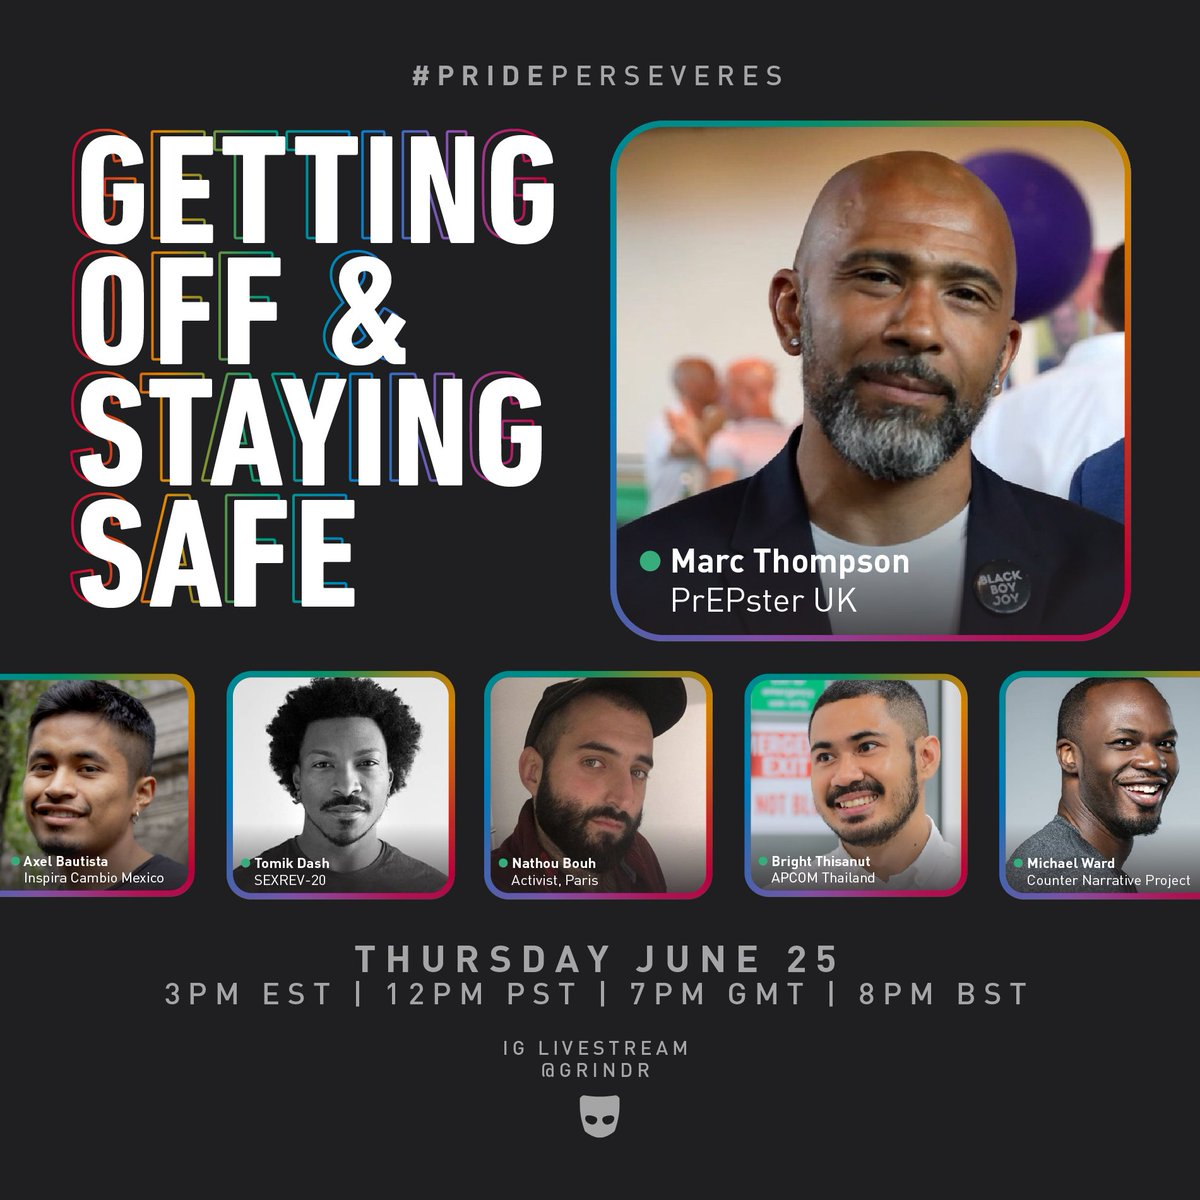 TODAY @ 3PM ET   12PM PT— getting off & staying safe 💥 join @marct_01 from @TeamPrepster for a panel about sexual health, PrEP, U=U, and what safe sex means in different parts of the world 🌎 watch LIVE on our insta: https://t.co/nyi85JyWGC #PridePerseveres https://t.co/h8yITSkDgR